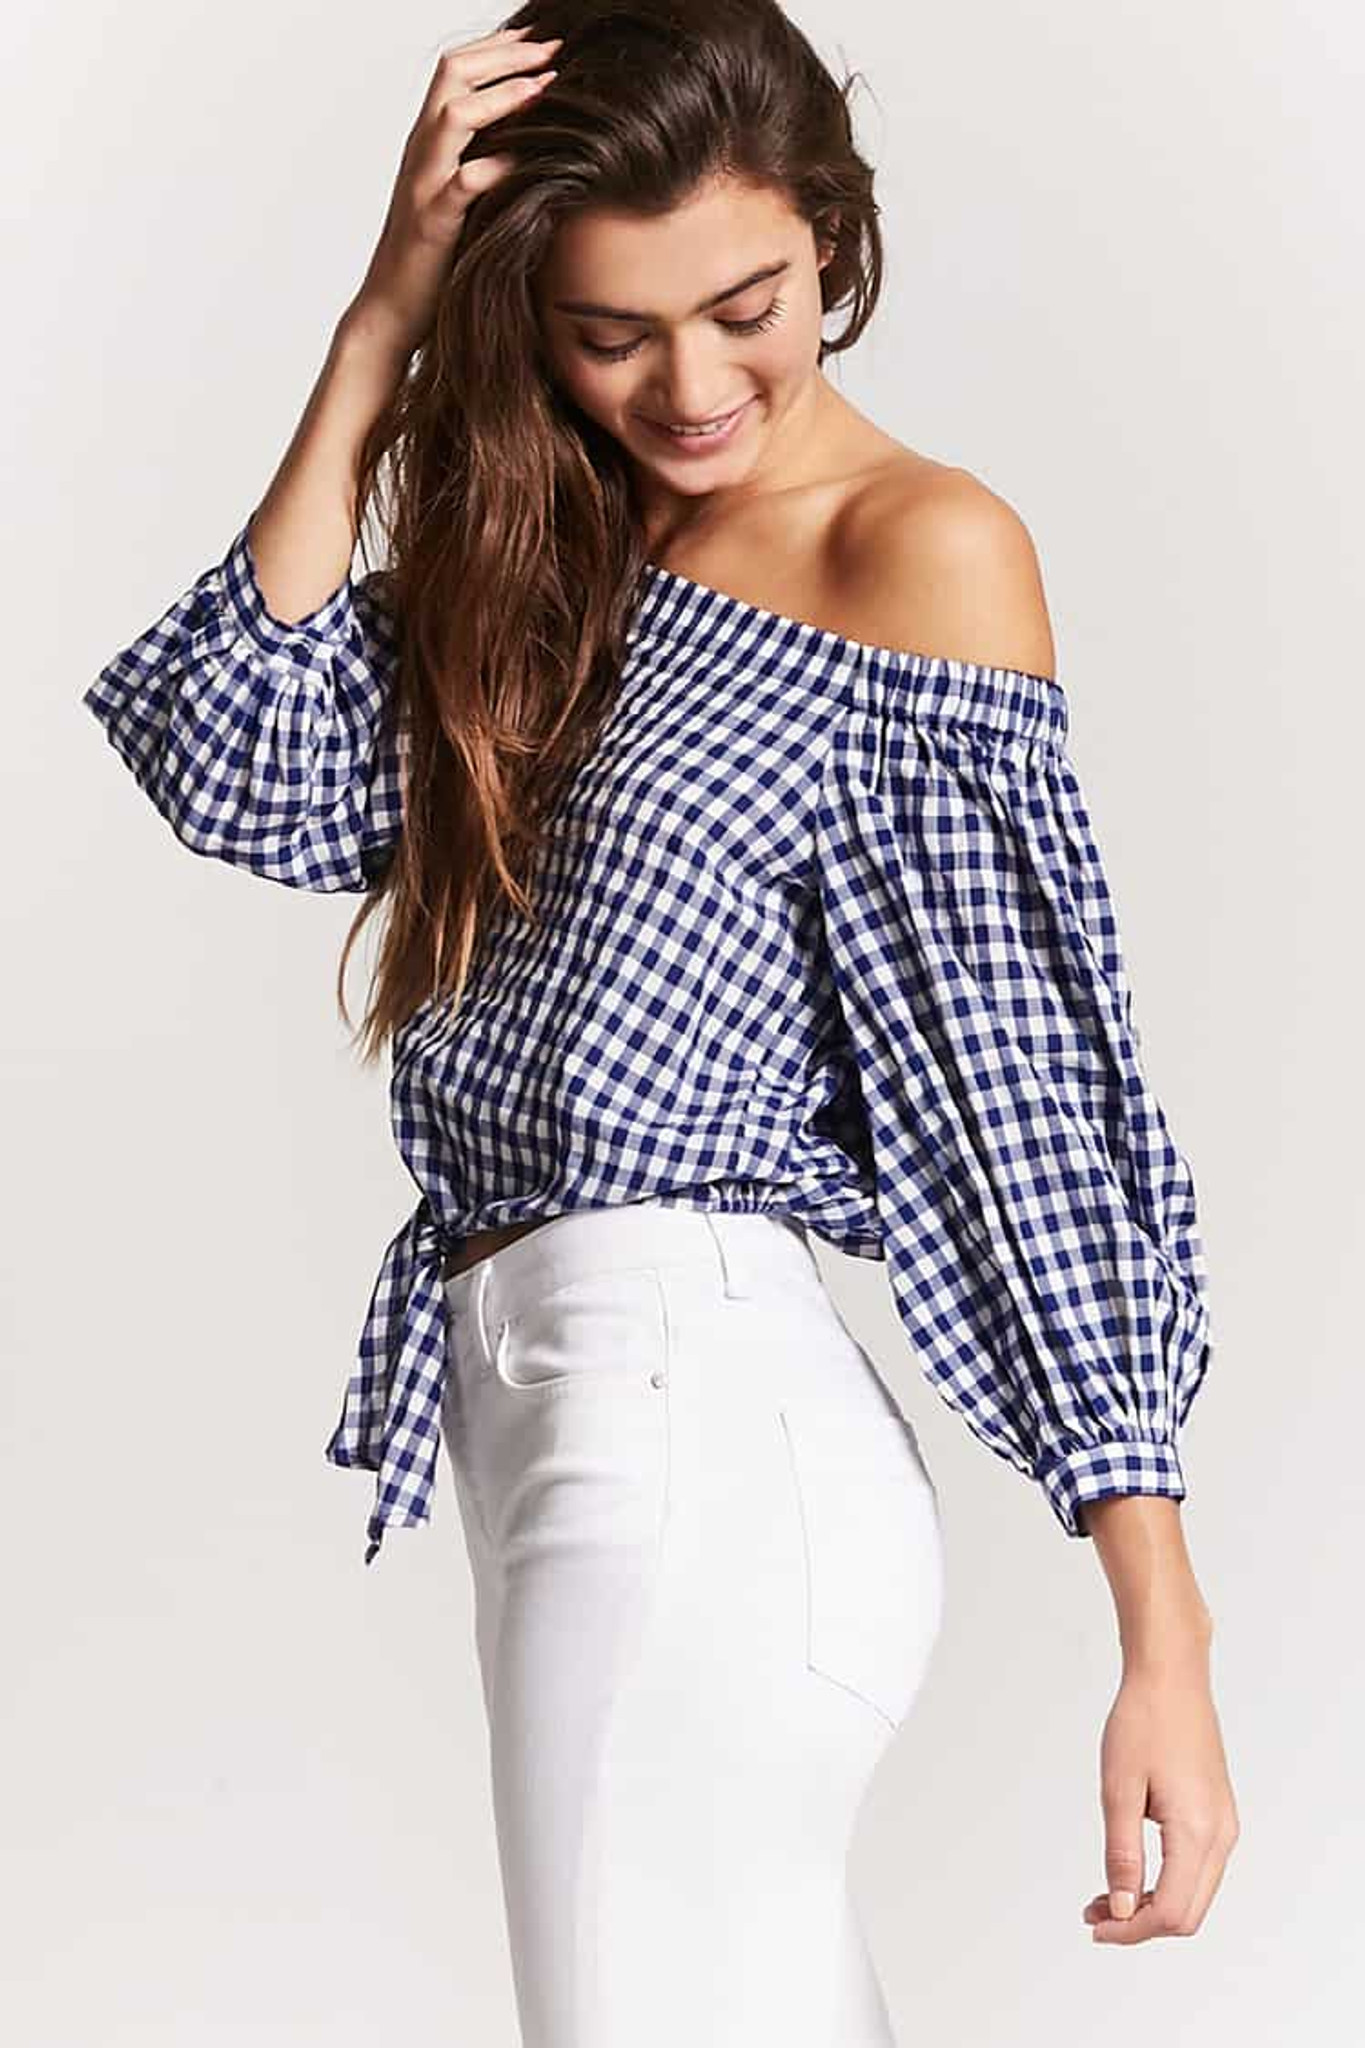 Fifth Avenue Women's Bottom Knot Gingham Off Shoulder Top - Dark Blue and White